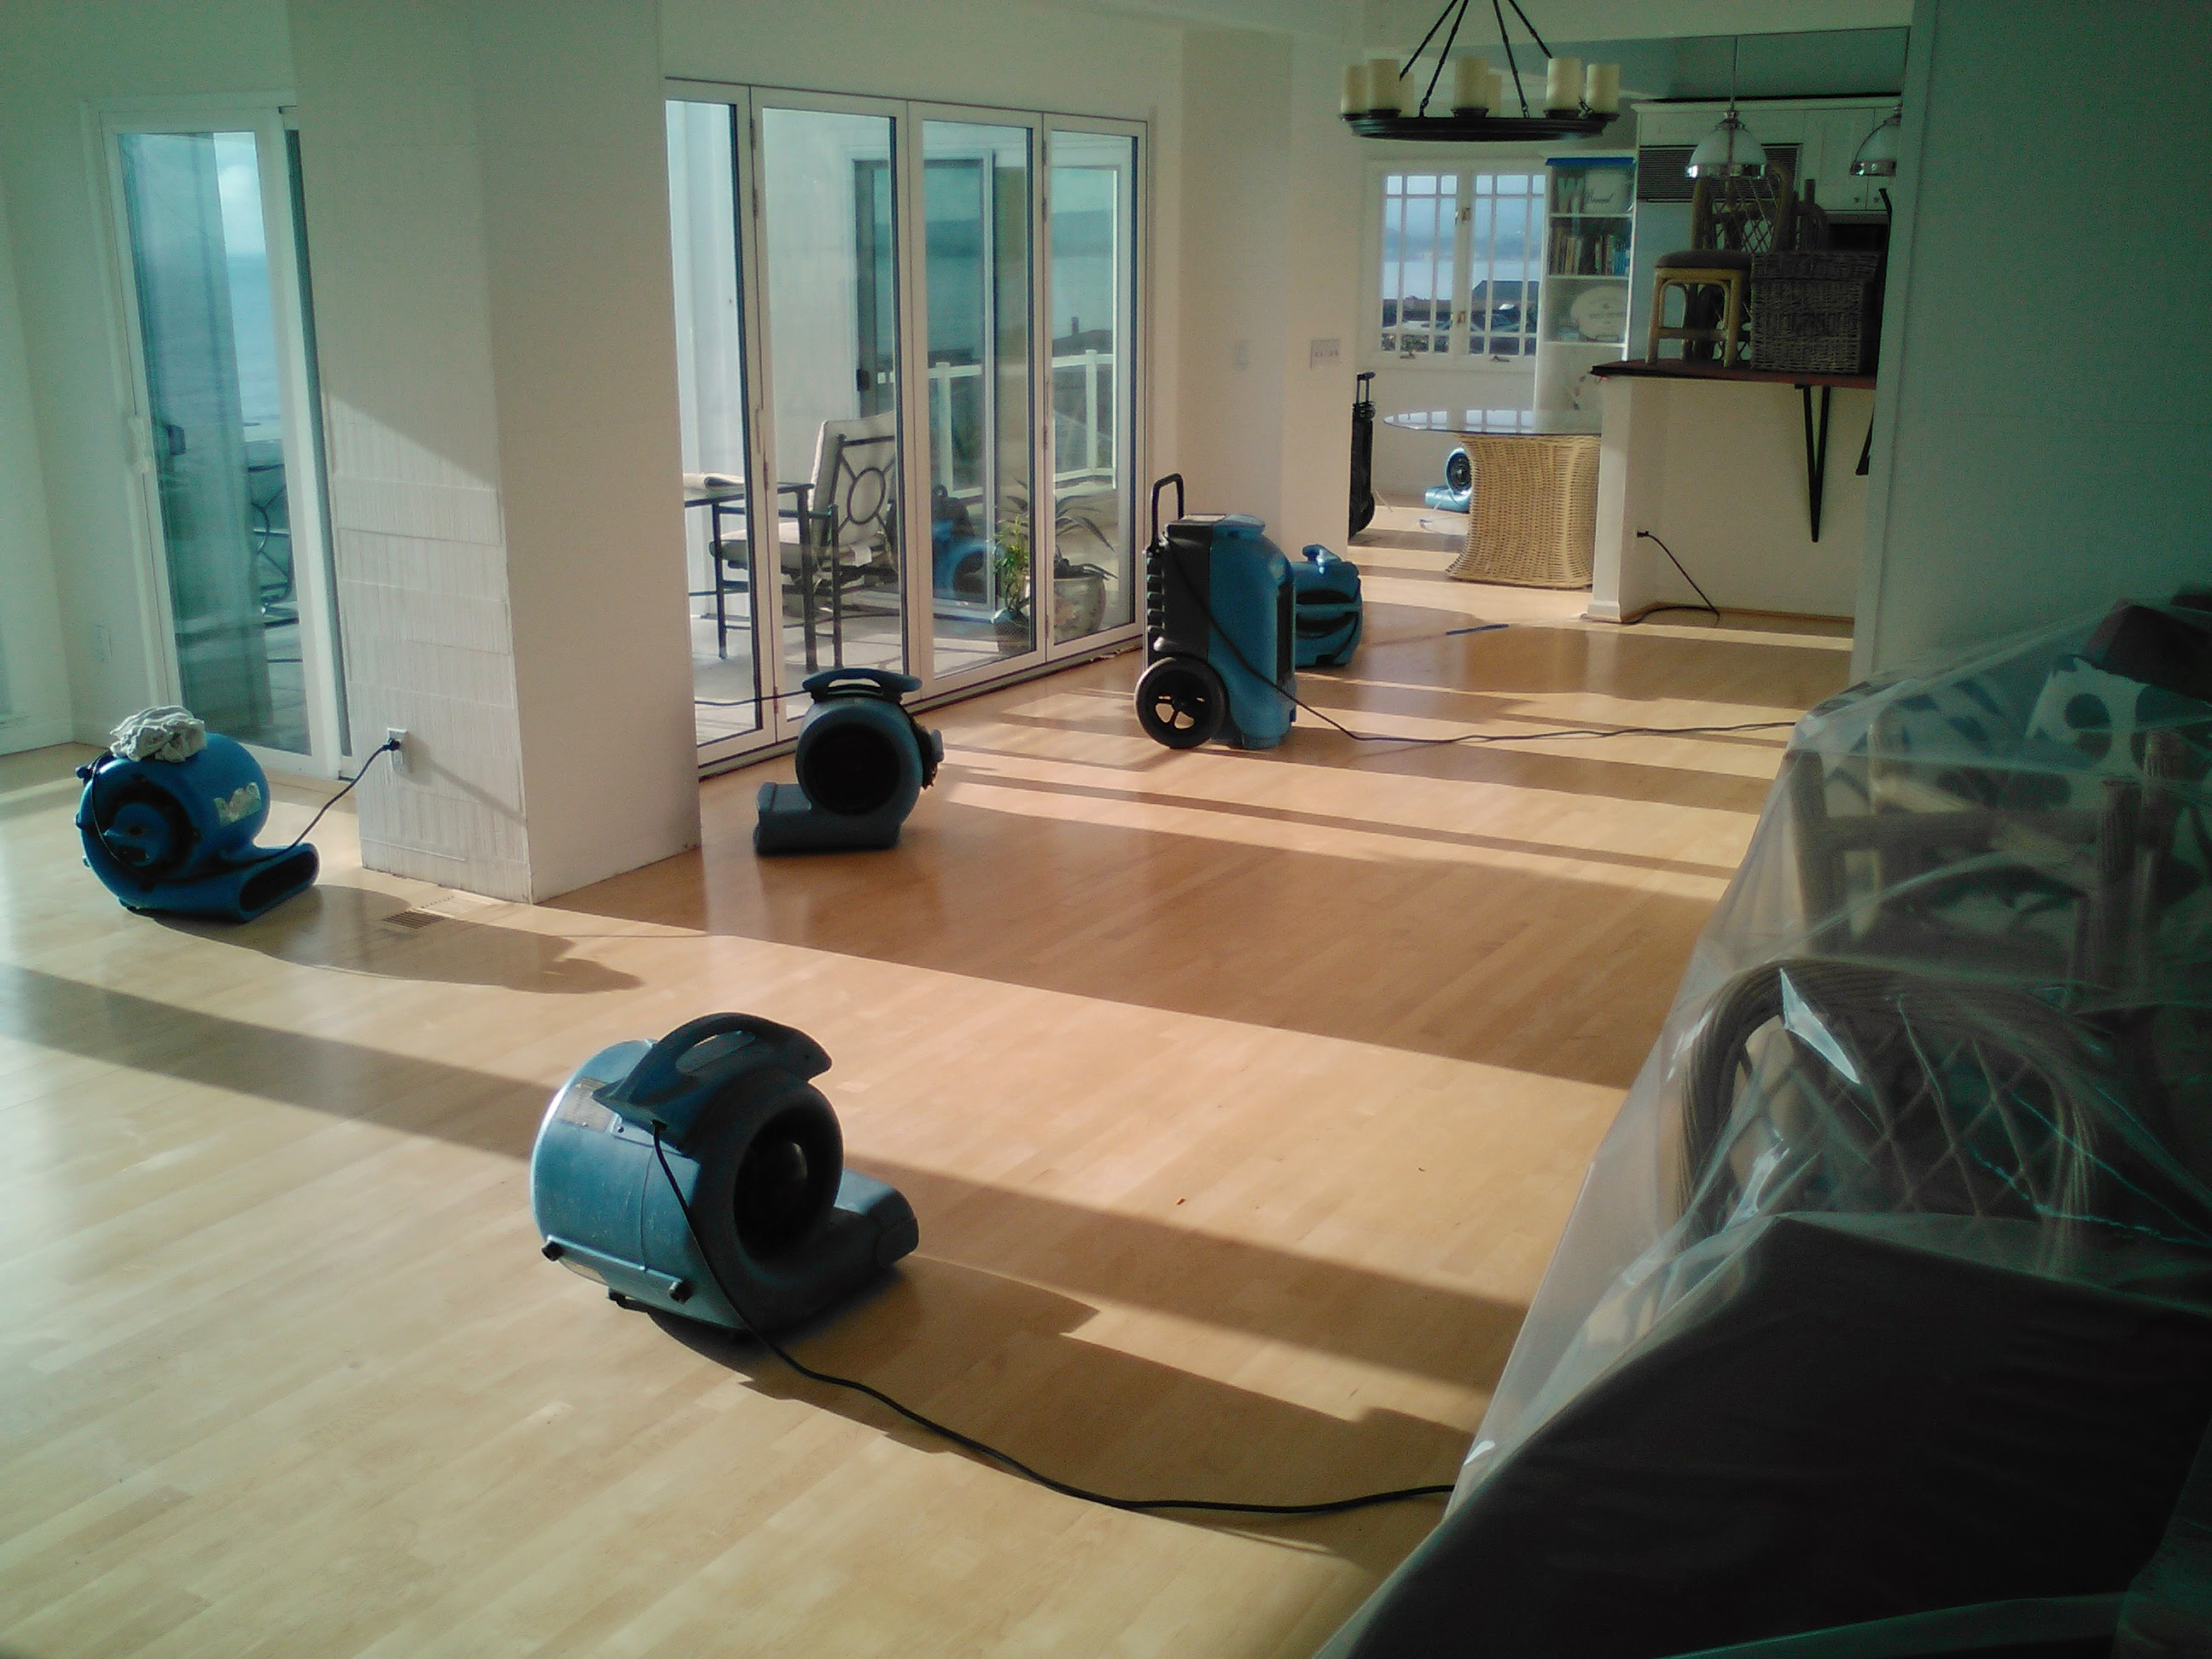 Water Damage Restoration Services The Water Damage